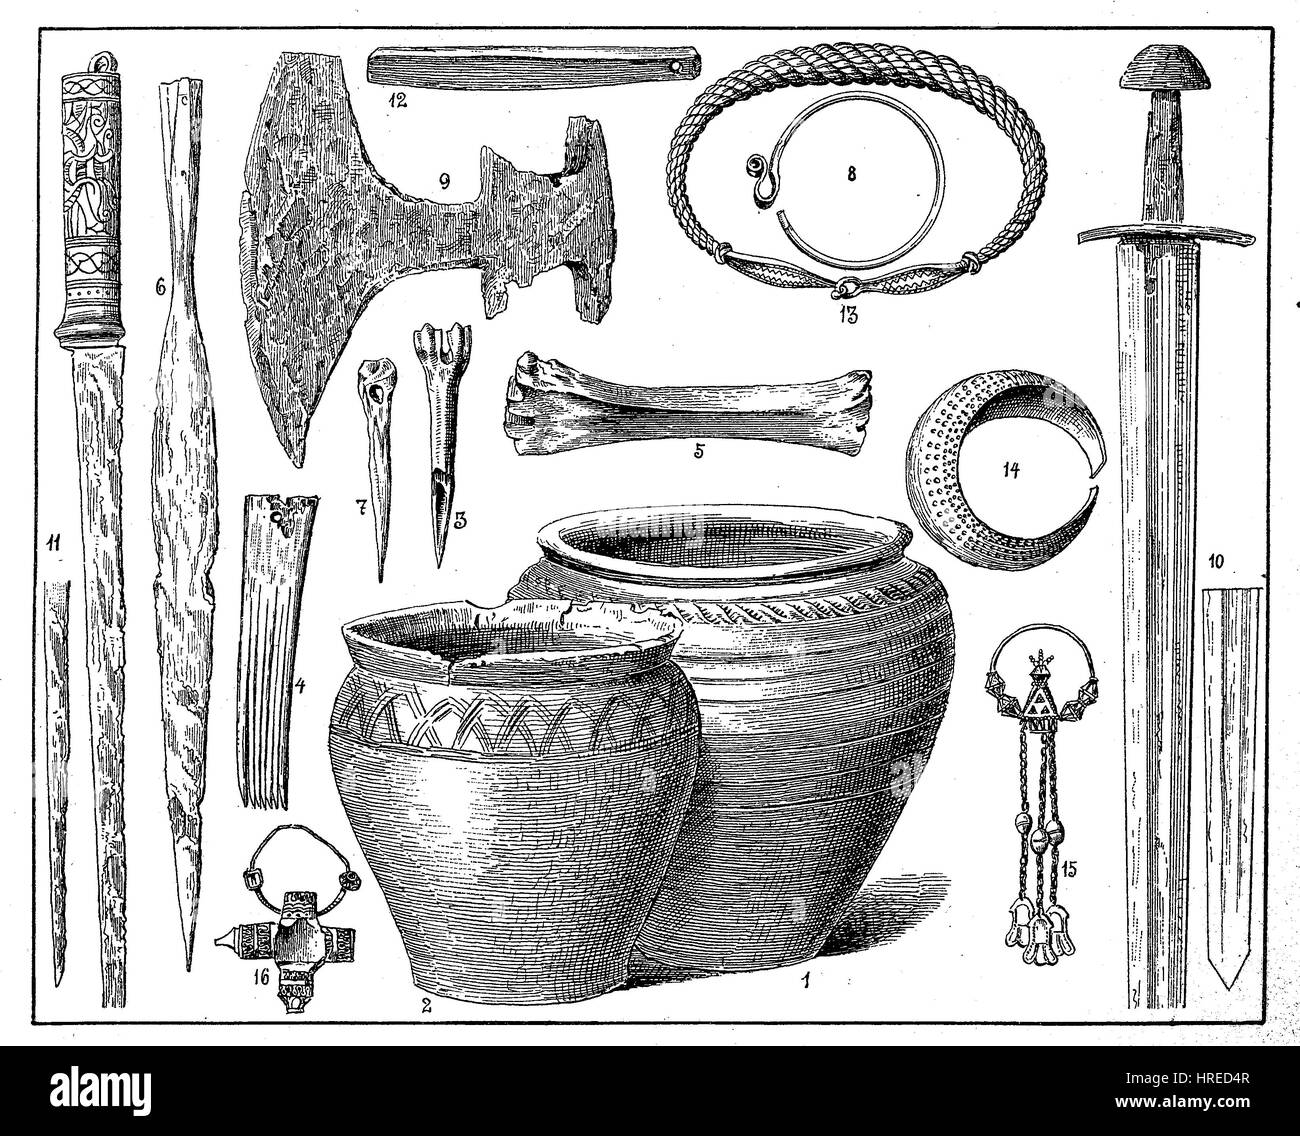 Weapons, jewelry and equipment, finds from graves of the Slavic period, Germany, reproduction of an woodcut from - Stock Image